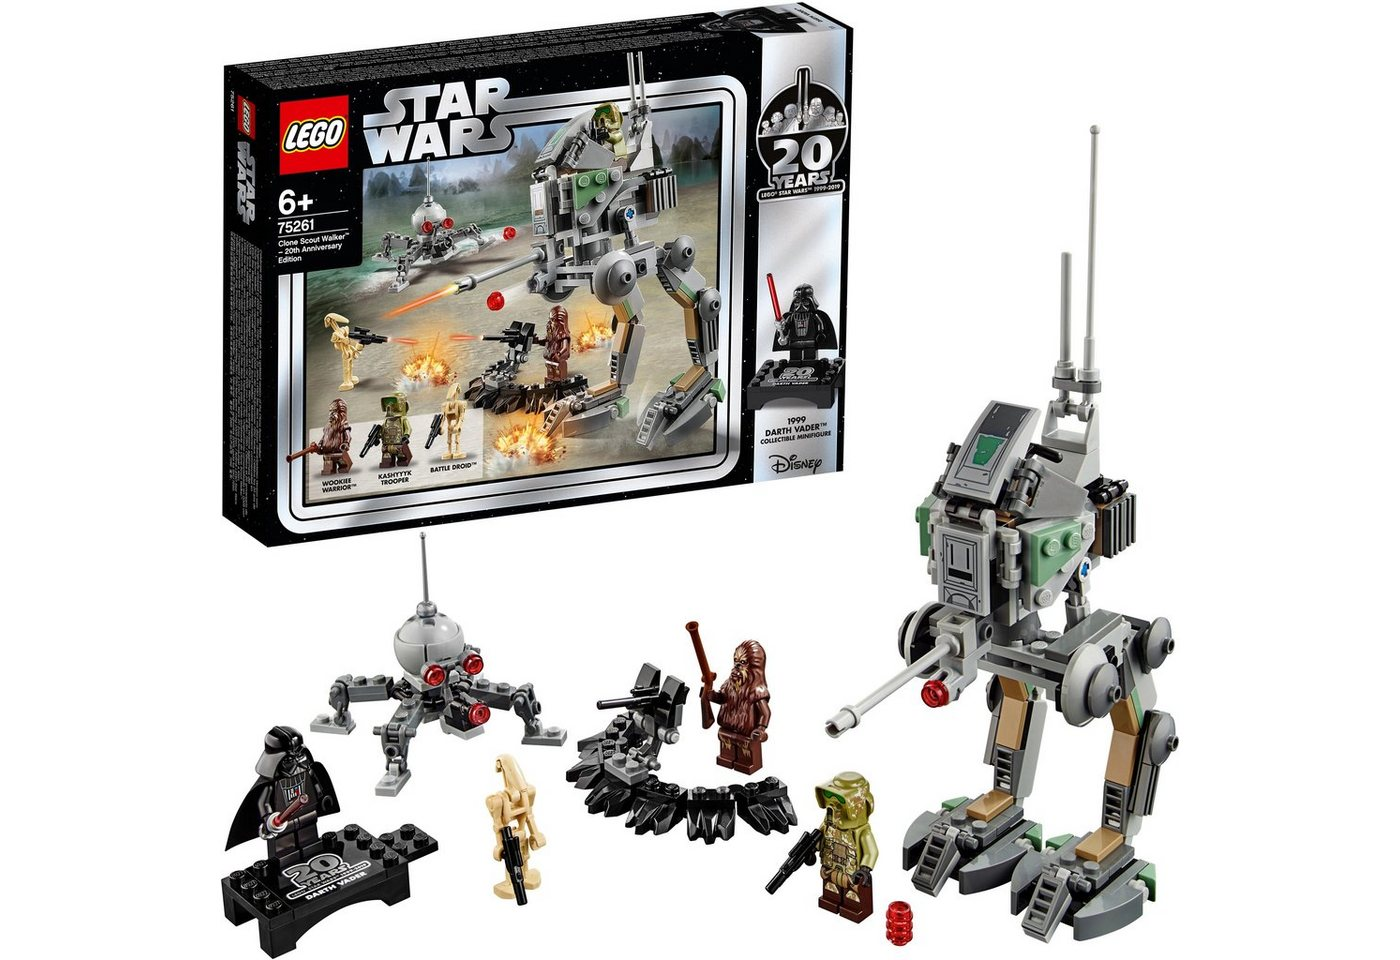 Image of LEGO 75261 Star Wars: Clone Scout Walker™ 20 Jahre LEGO Star Wars